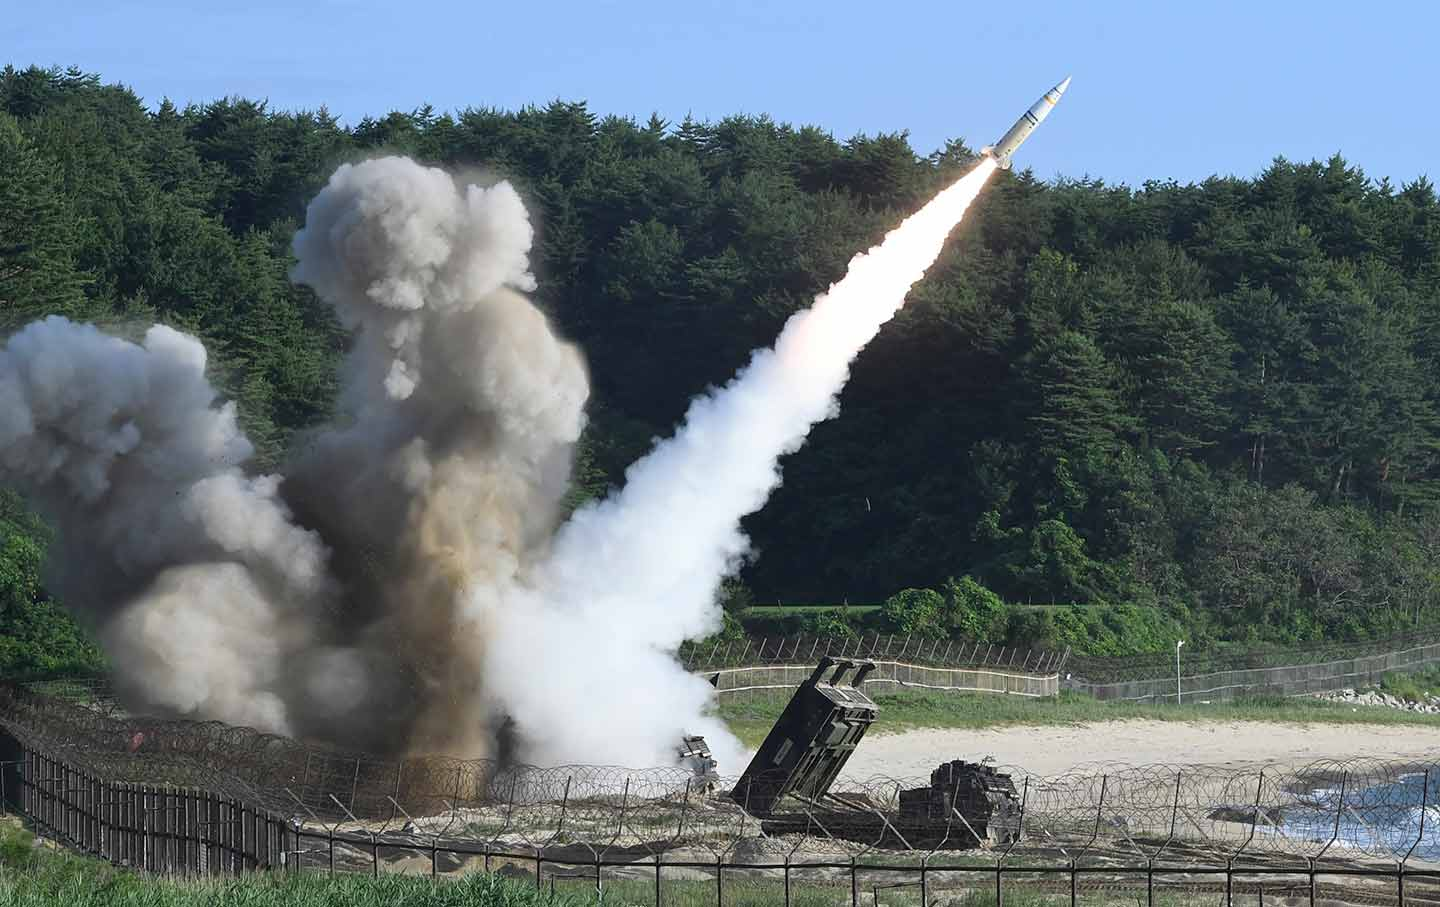 Tactical Missile is fired